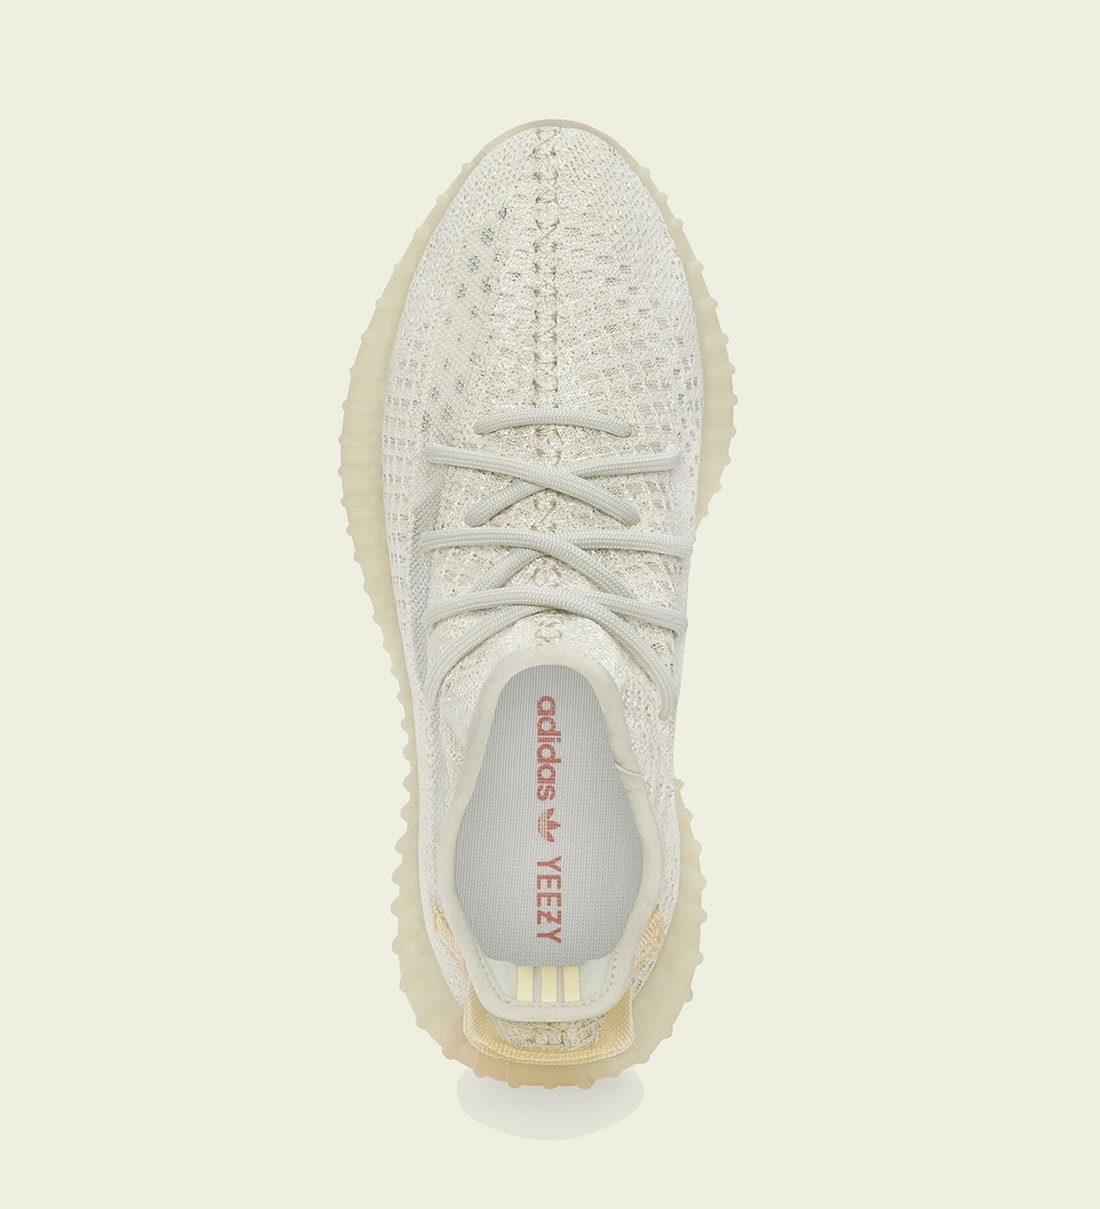 adidas Yeezy Boost 350 V2 Light GY3438 Release Info Price